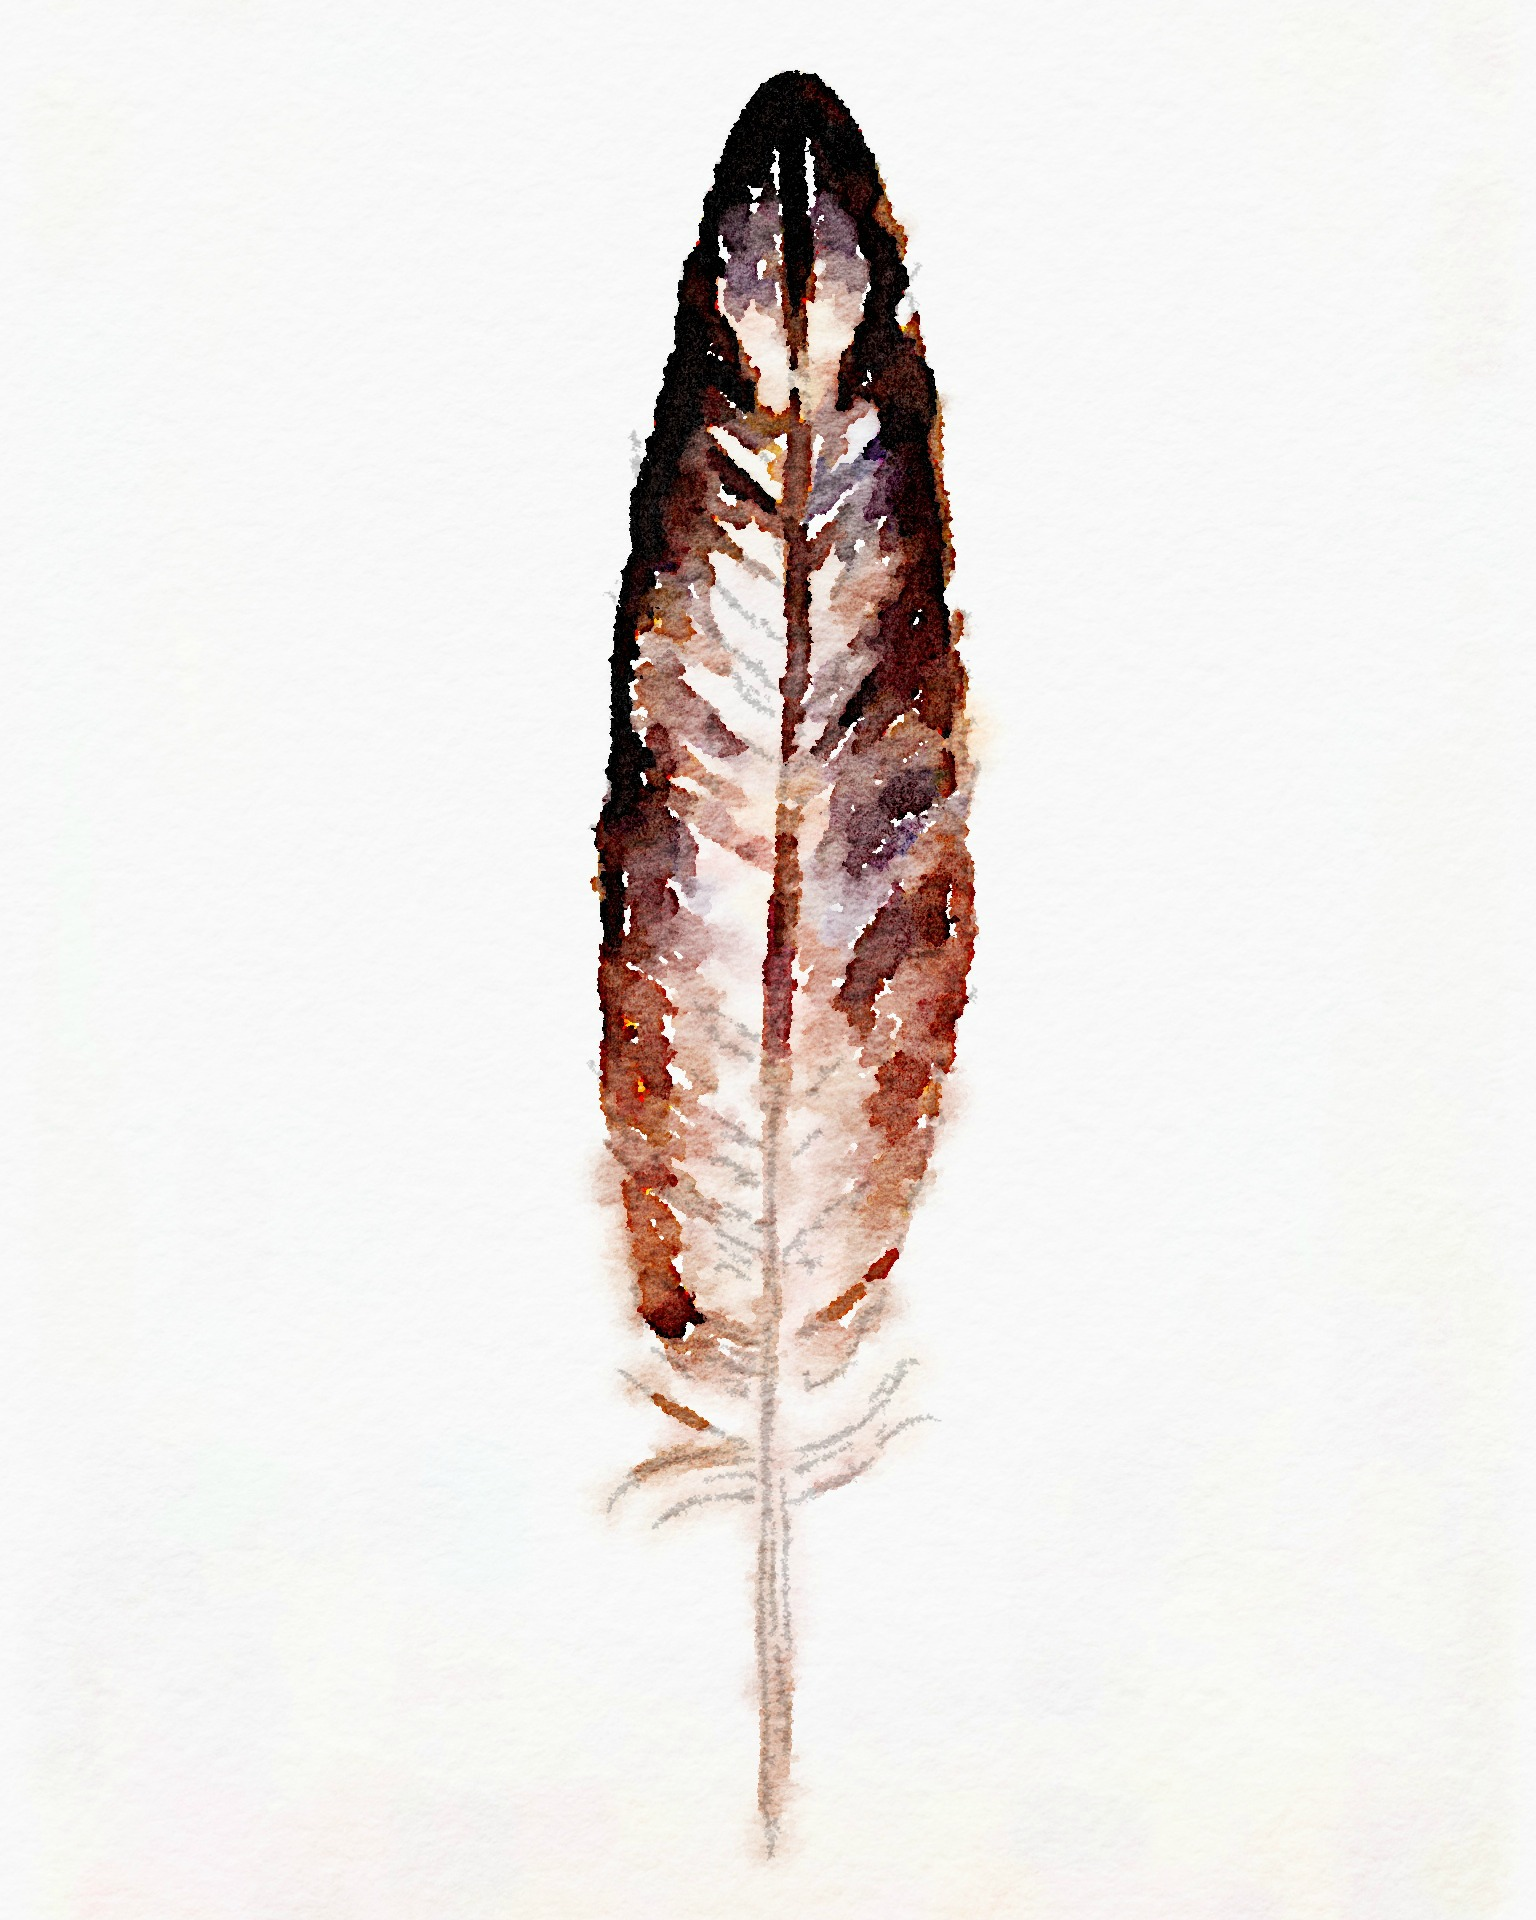 image about Feather Printable referred to as Watercolor Feather: Absolutely free Printable Artwork - Erin Spain